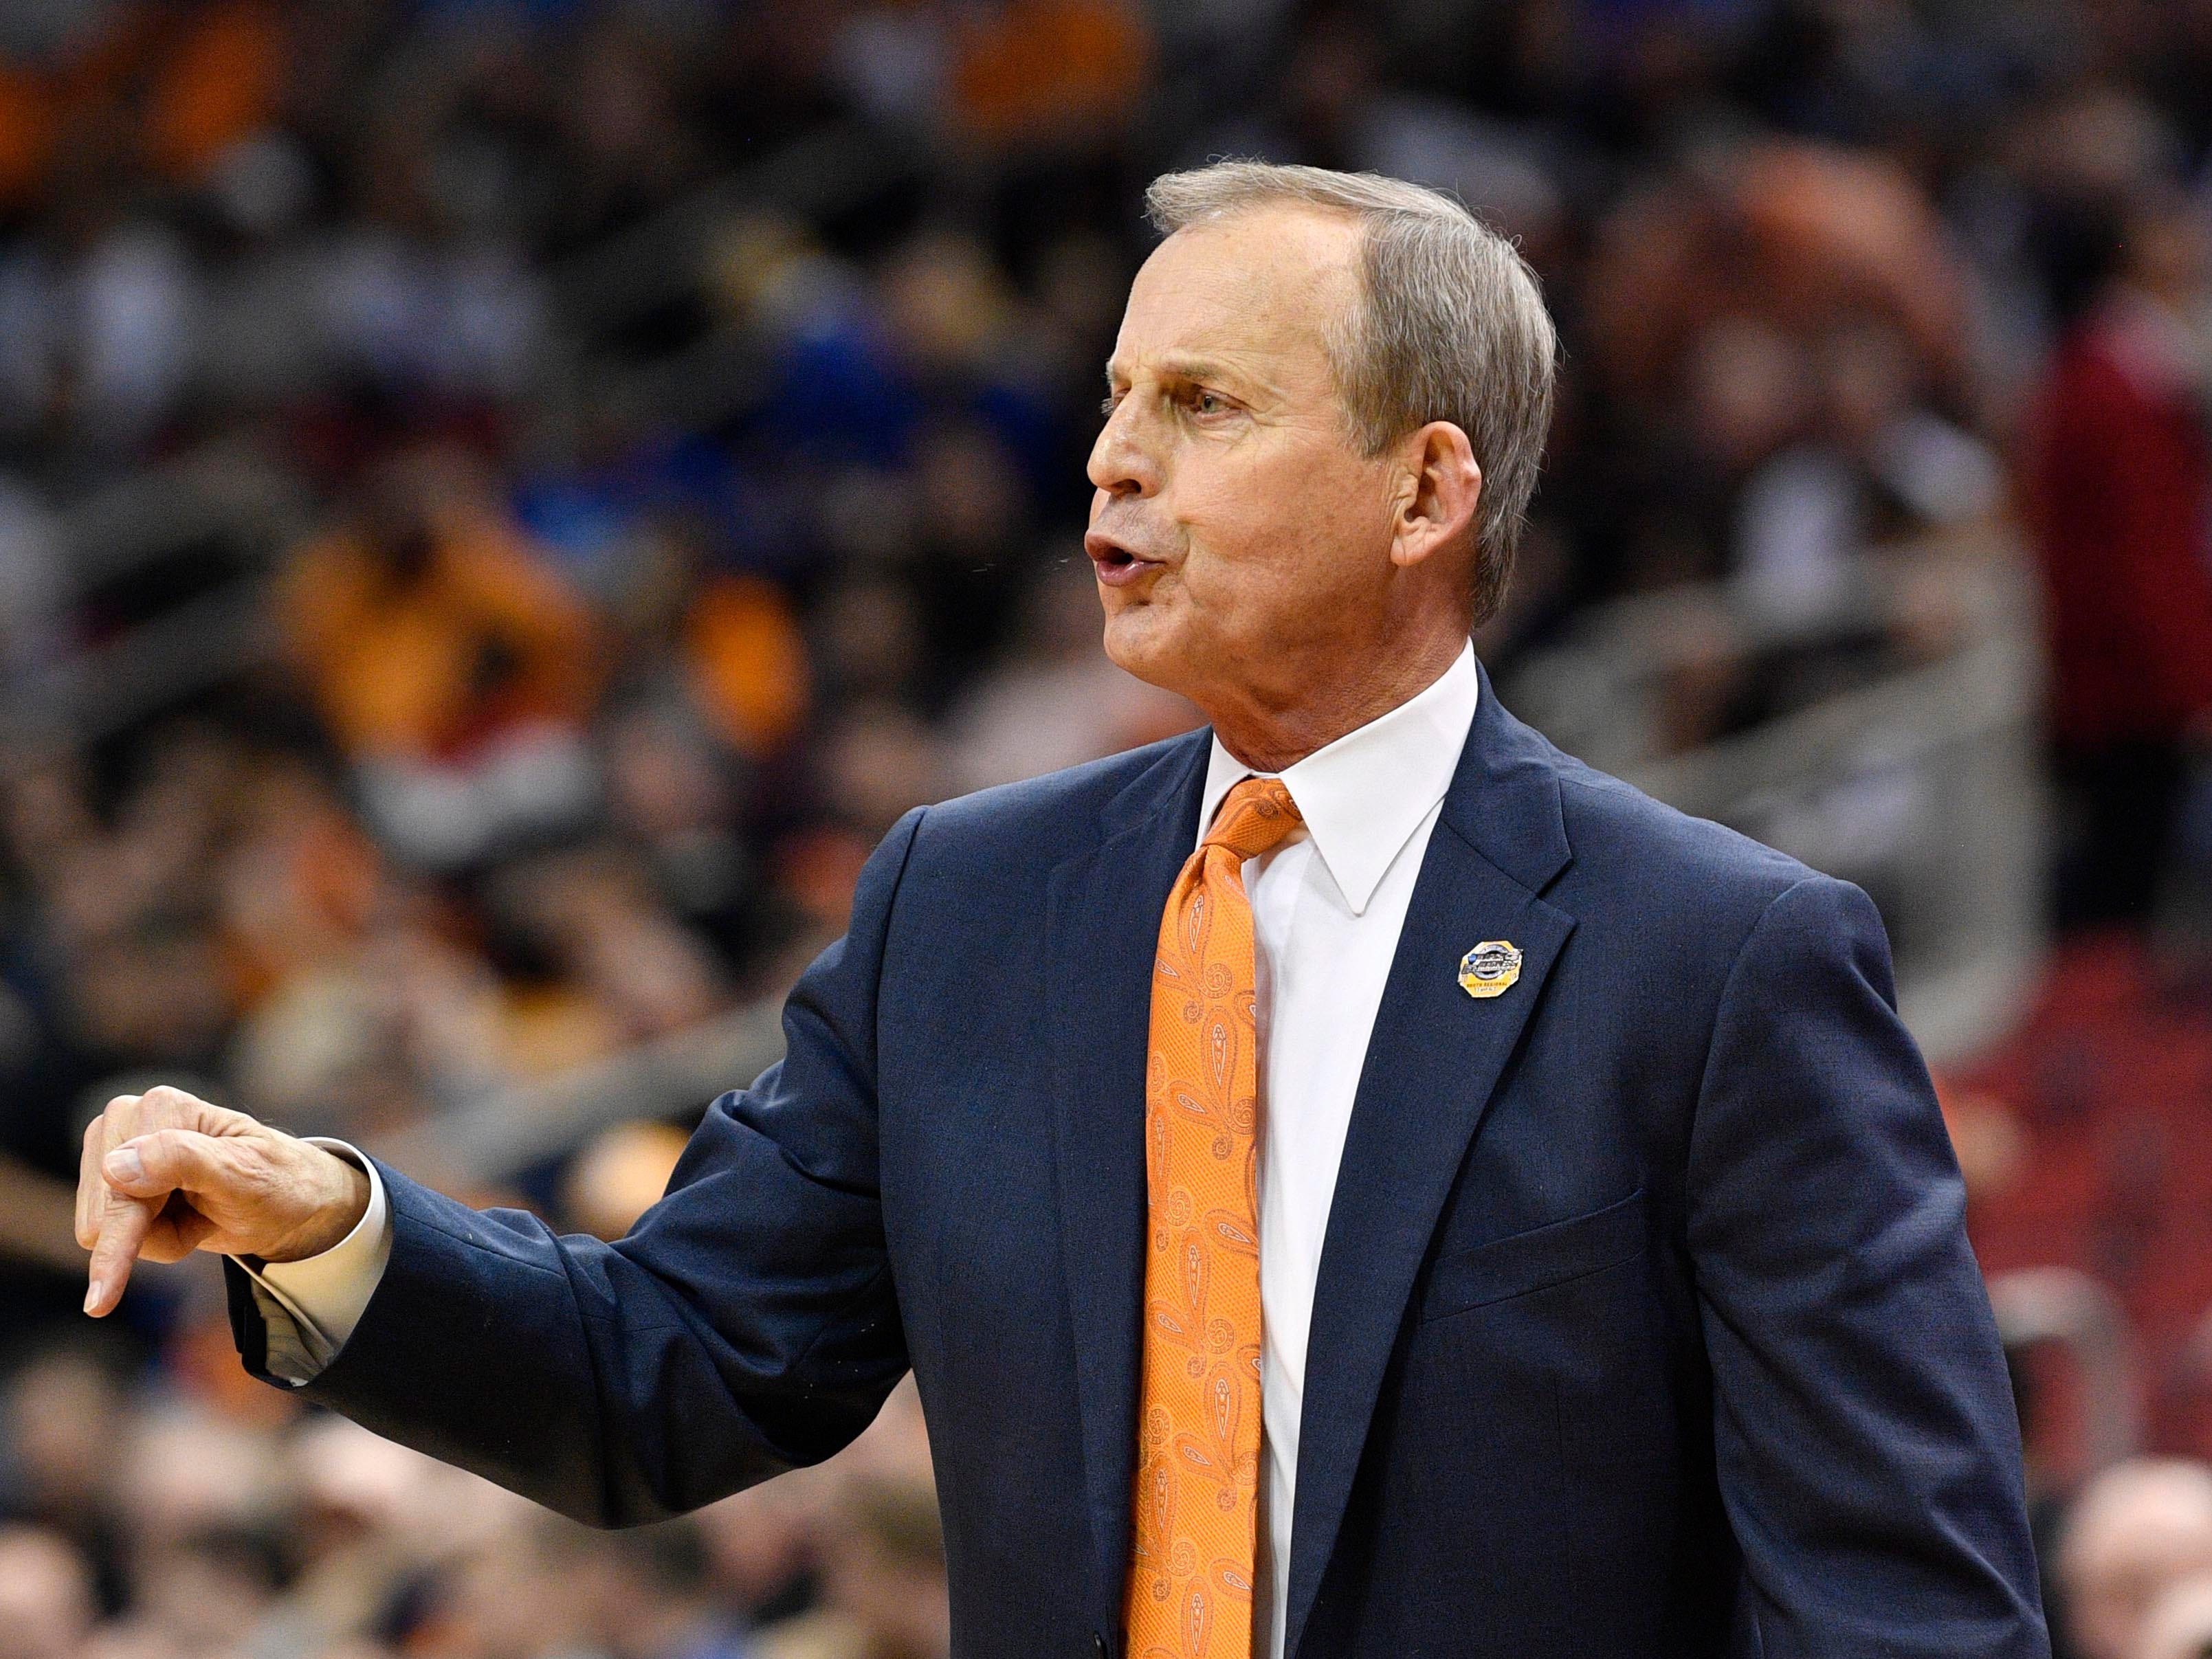 Mar 28, 2019; Louisville, KY, United States; Tennessee Volunteers head coach Rick Barnes reacts during the first half in the semifinals of the south regional against the Purdue Boilermakers of the 2019 NCAA Tournament at KFC Yum Center. Mandatory Credit: Jamie Rhodes-USA TODAY Sports